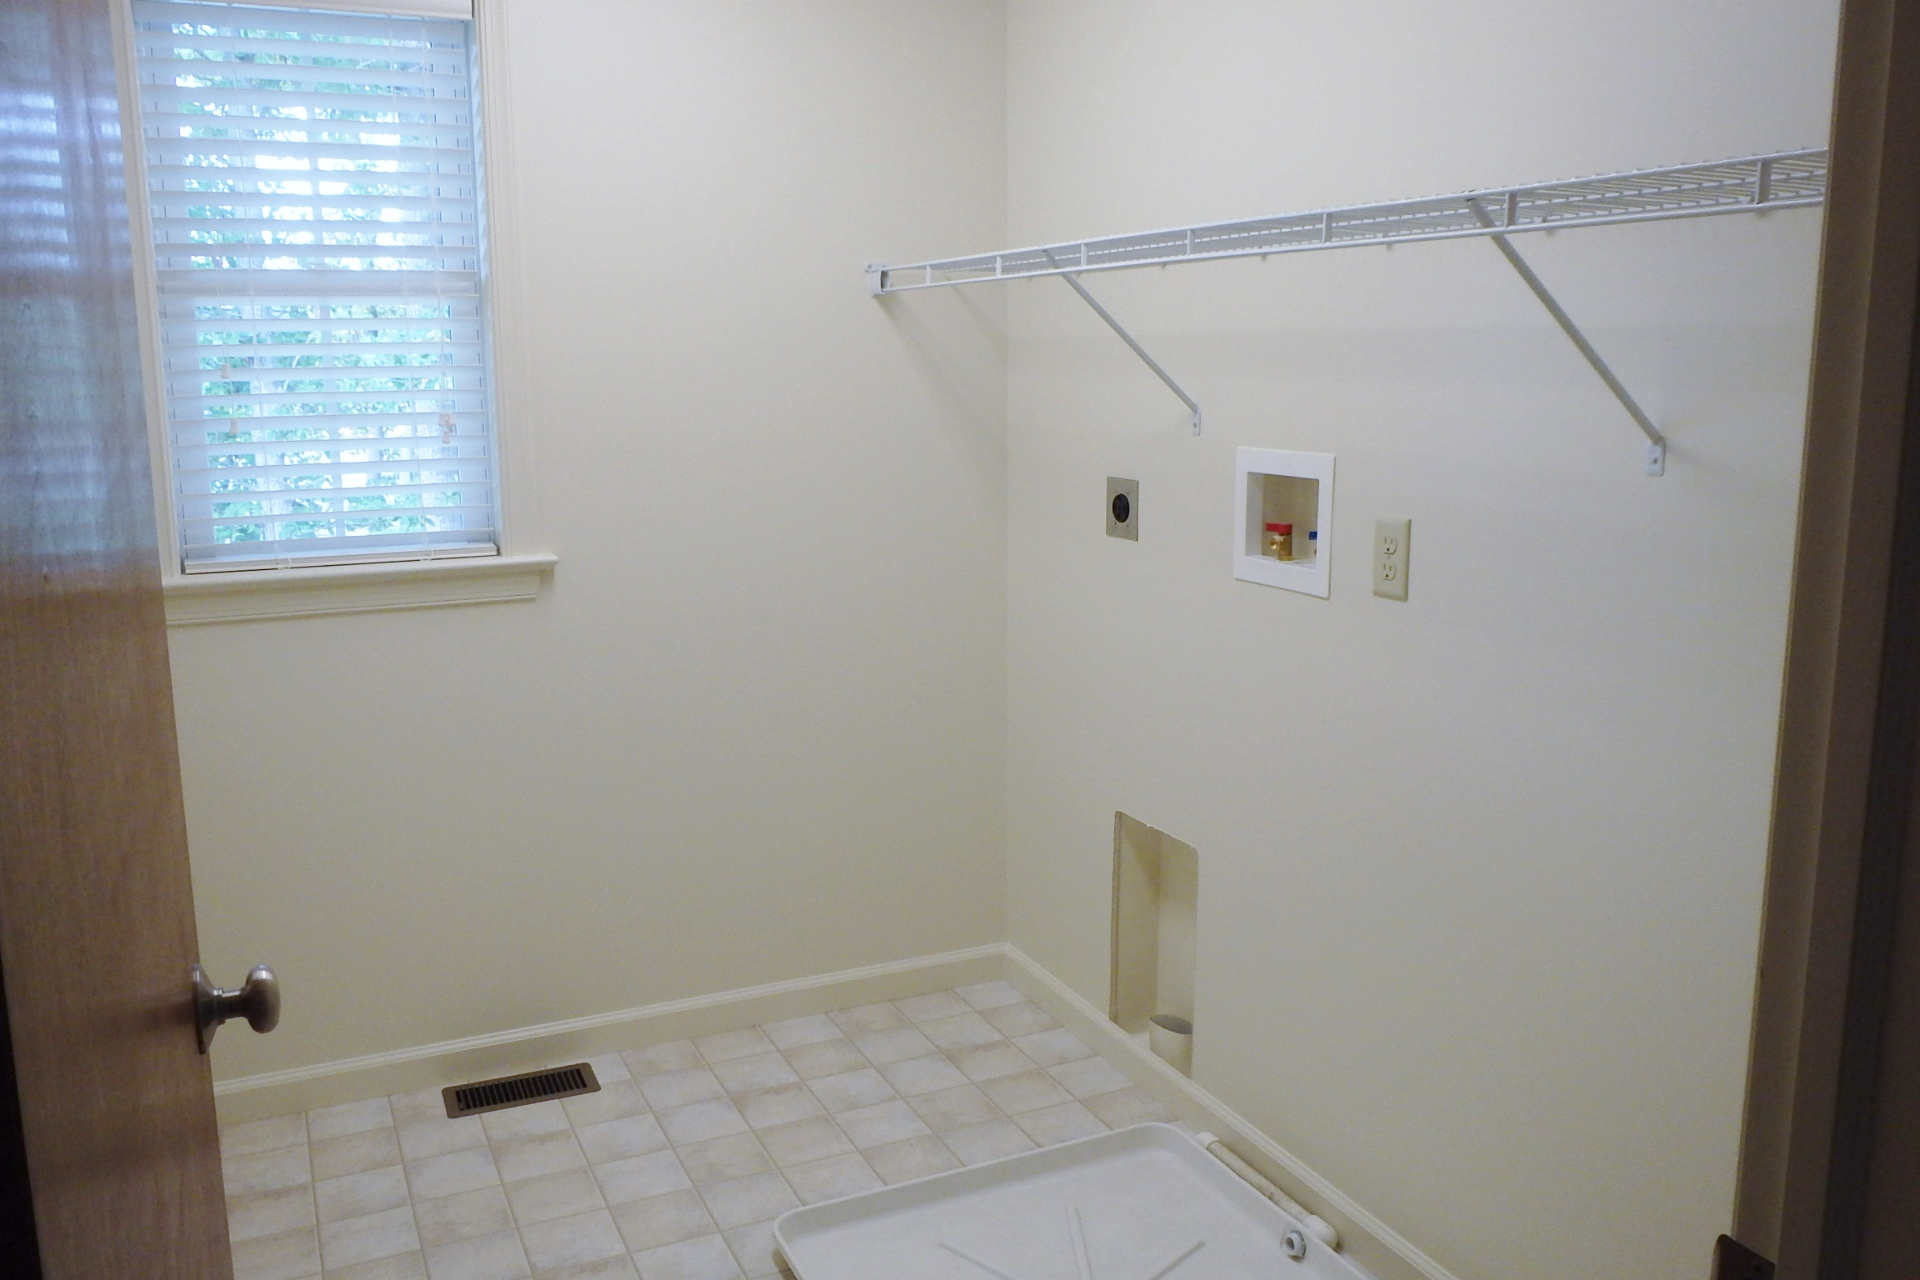 Laundry room photo at 164 McKivision Court in State College PA.